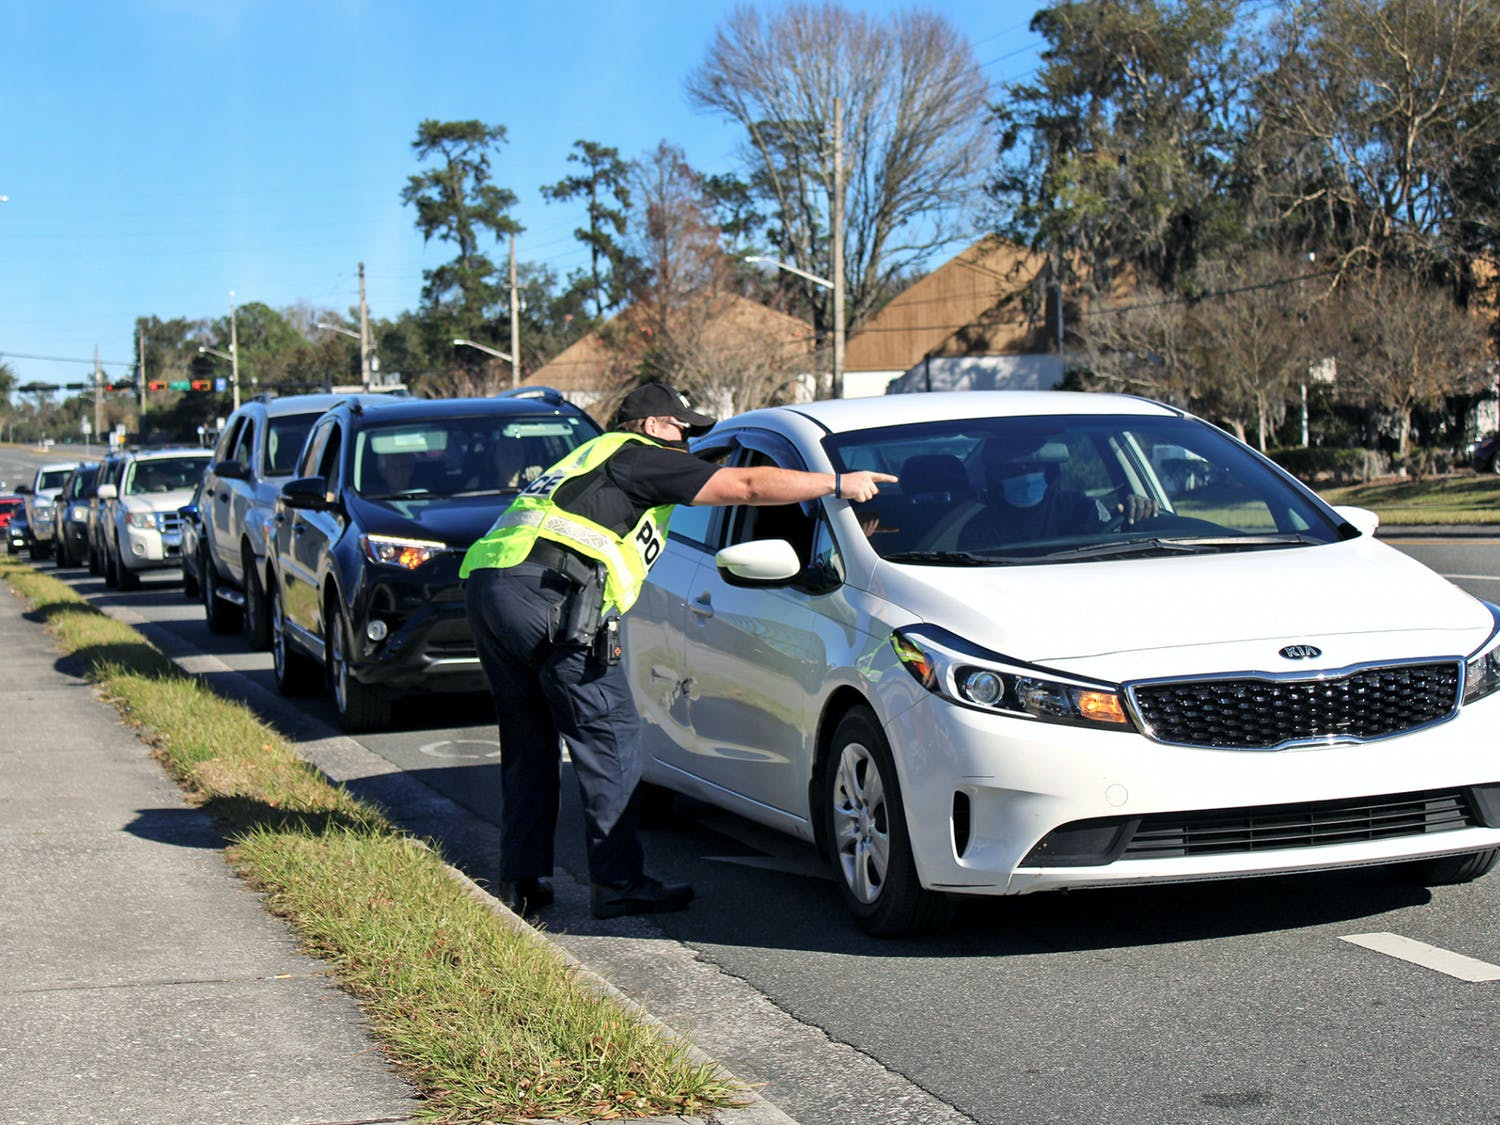 J. Evans, a Gainesville Police Department officer, directs traffic into Malcom Randall VA Medical Center on Monday, Jan. 18, 2021. A long line of traffic formed outside the hospital as Alachua County residents 65-years-old and older waited to receive COVID-19 vaccines.